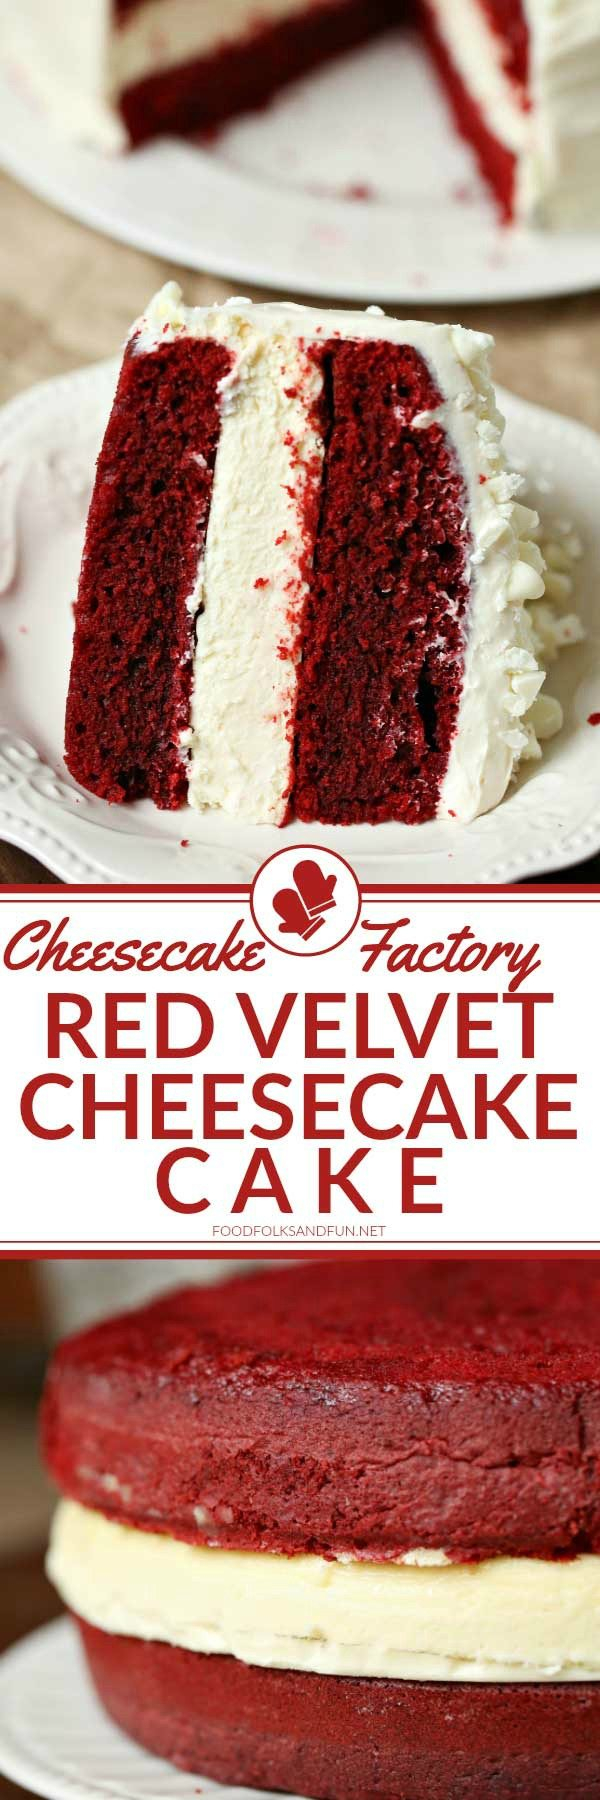 Cheesecake Factory Birthday Cake Cheesecake Factory Red Velvet Cheesecake Cake Copycat Food Folks